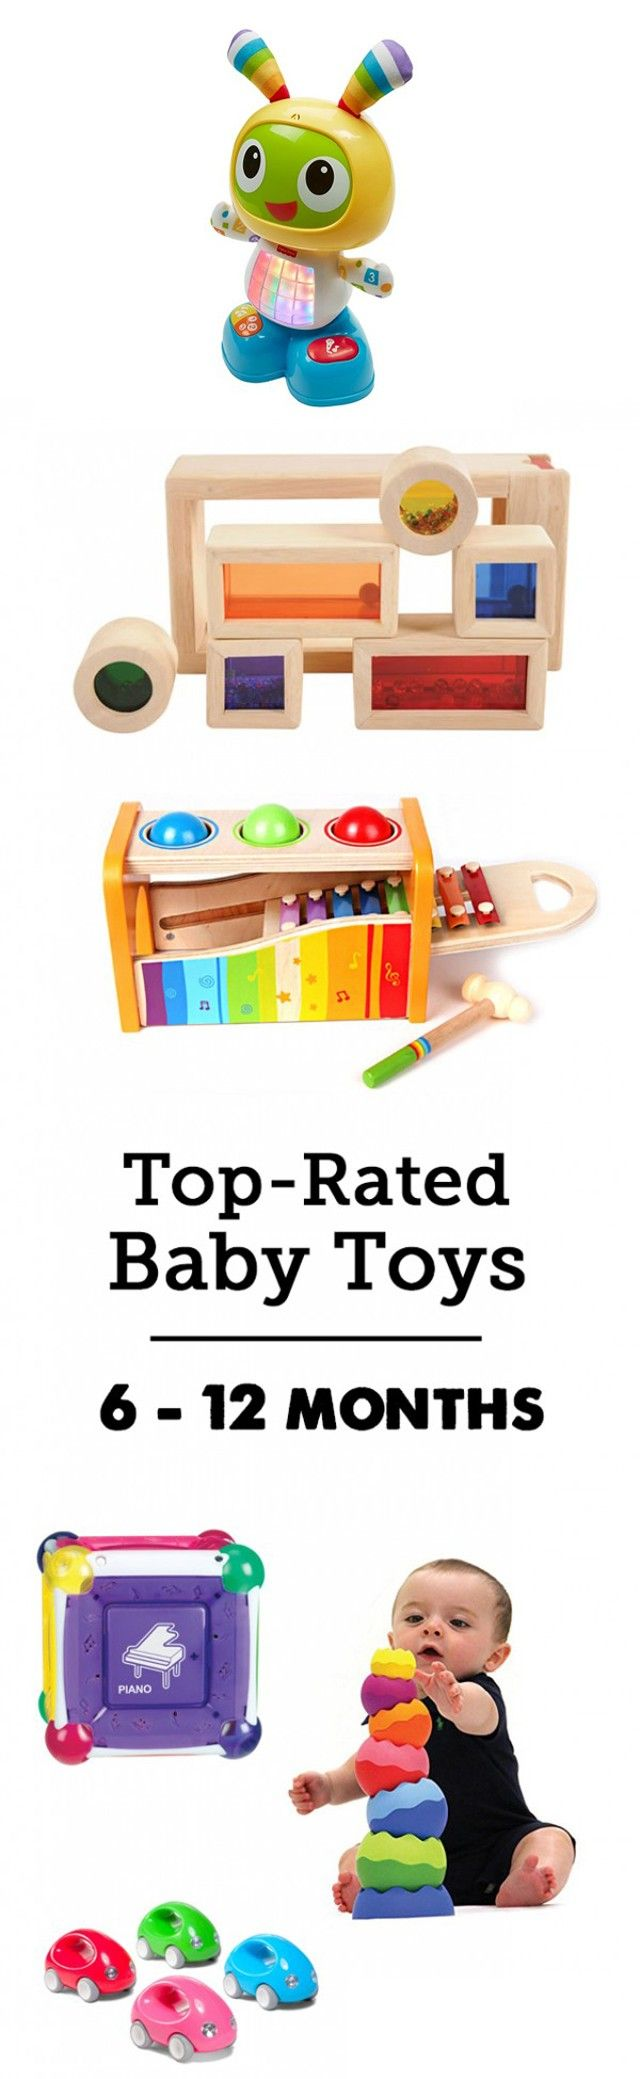 MPMK Gift Guide Snippet: Best Gifts for 6 - 12 Month Olds ...